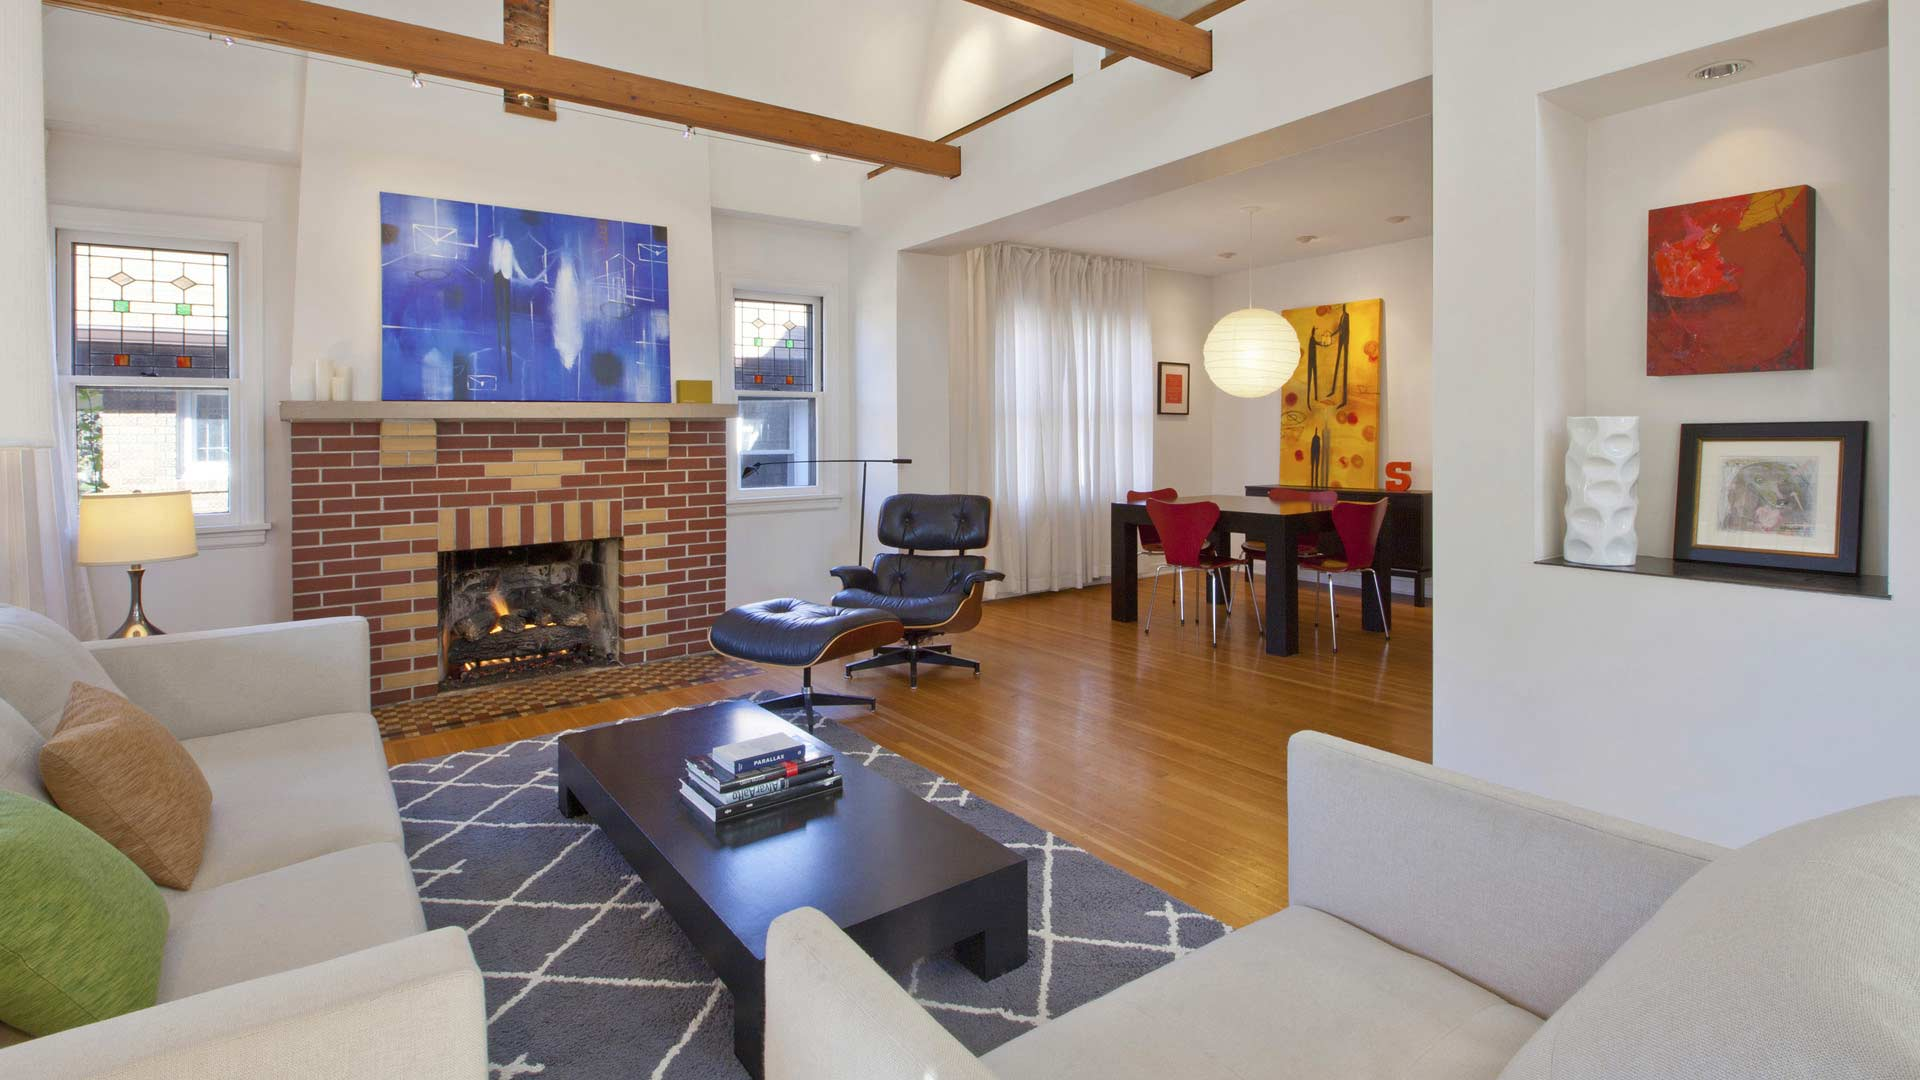 Renovated Living space adds vaulted ceiling with exposed beams, art niche, and new modern details - Classic Irvington Tudor Remodel - Indianapolis, IN